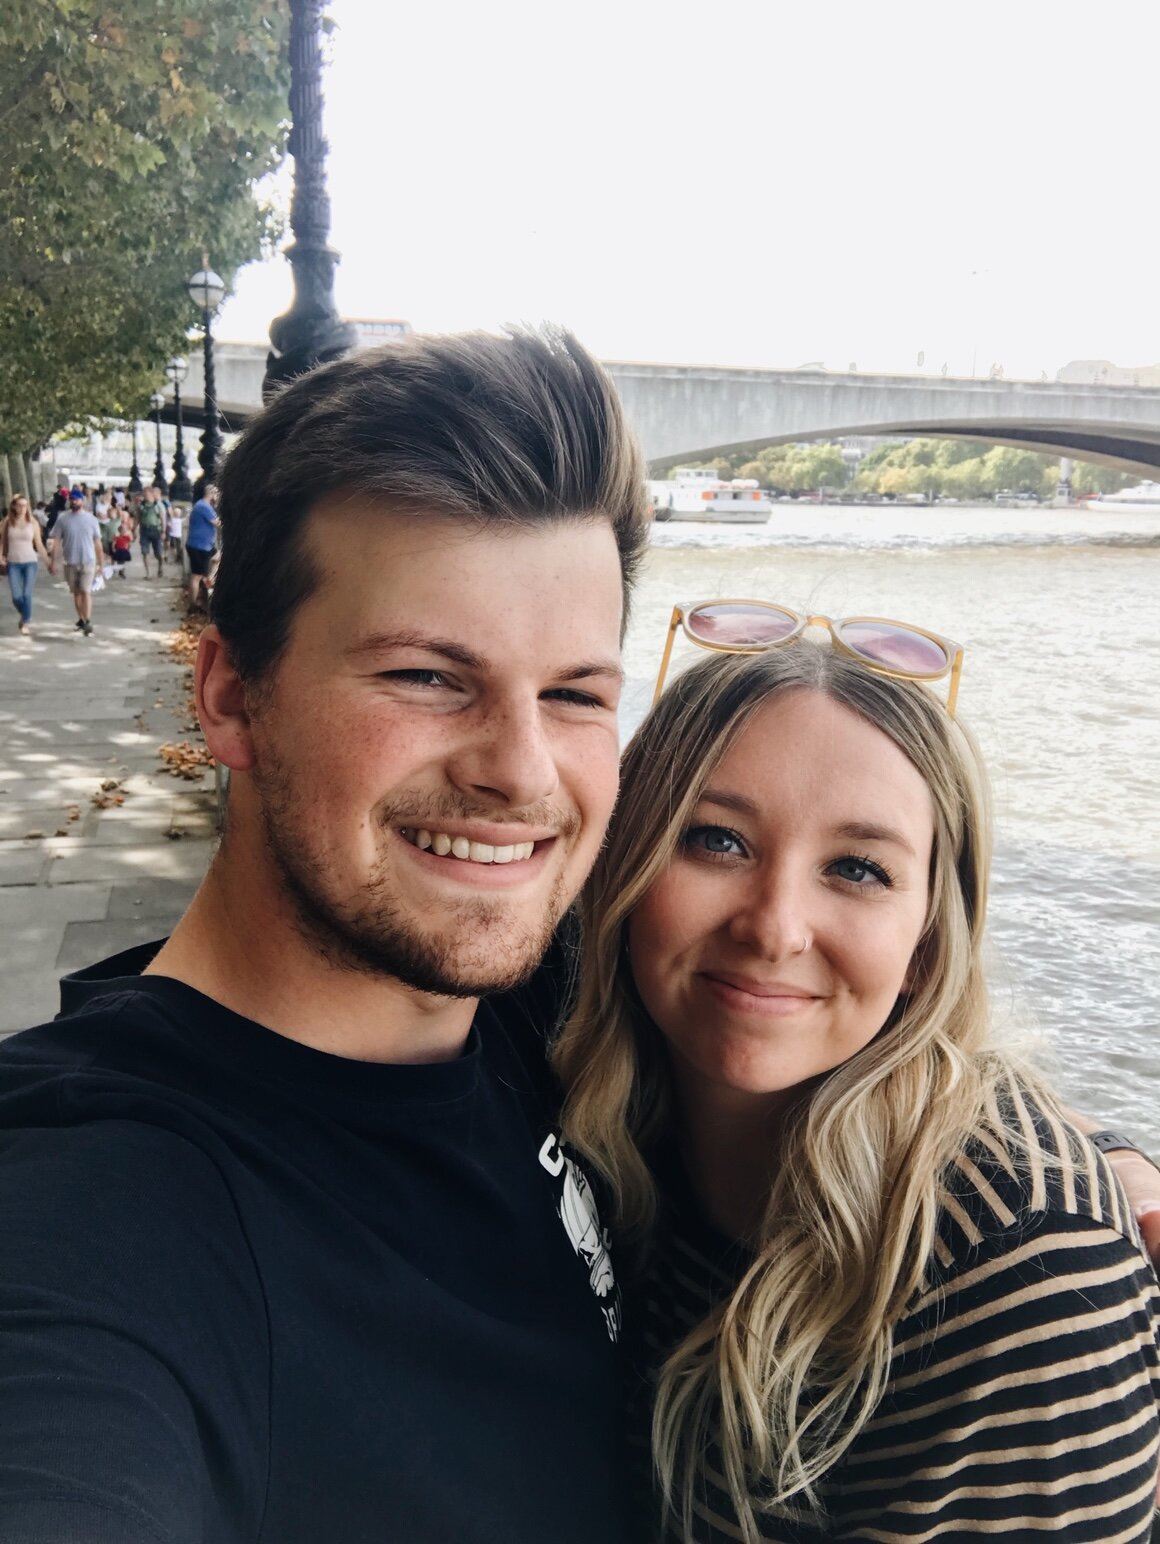 Was able to enjoy some time in London during my time off a few weeks ago, so thankful for him!